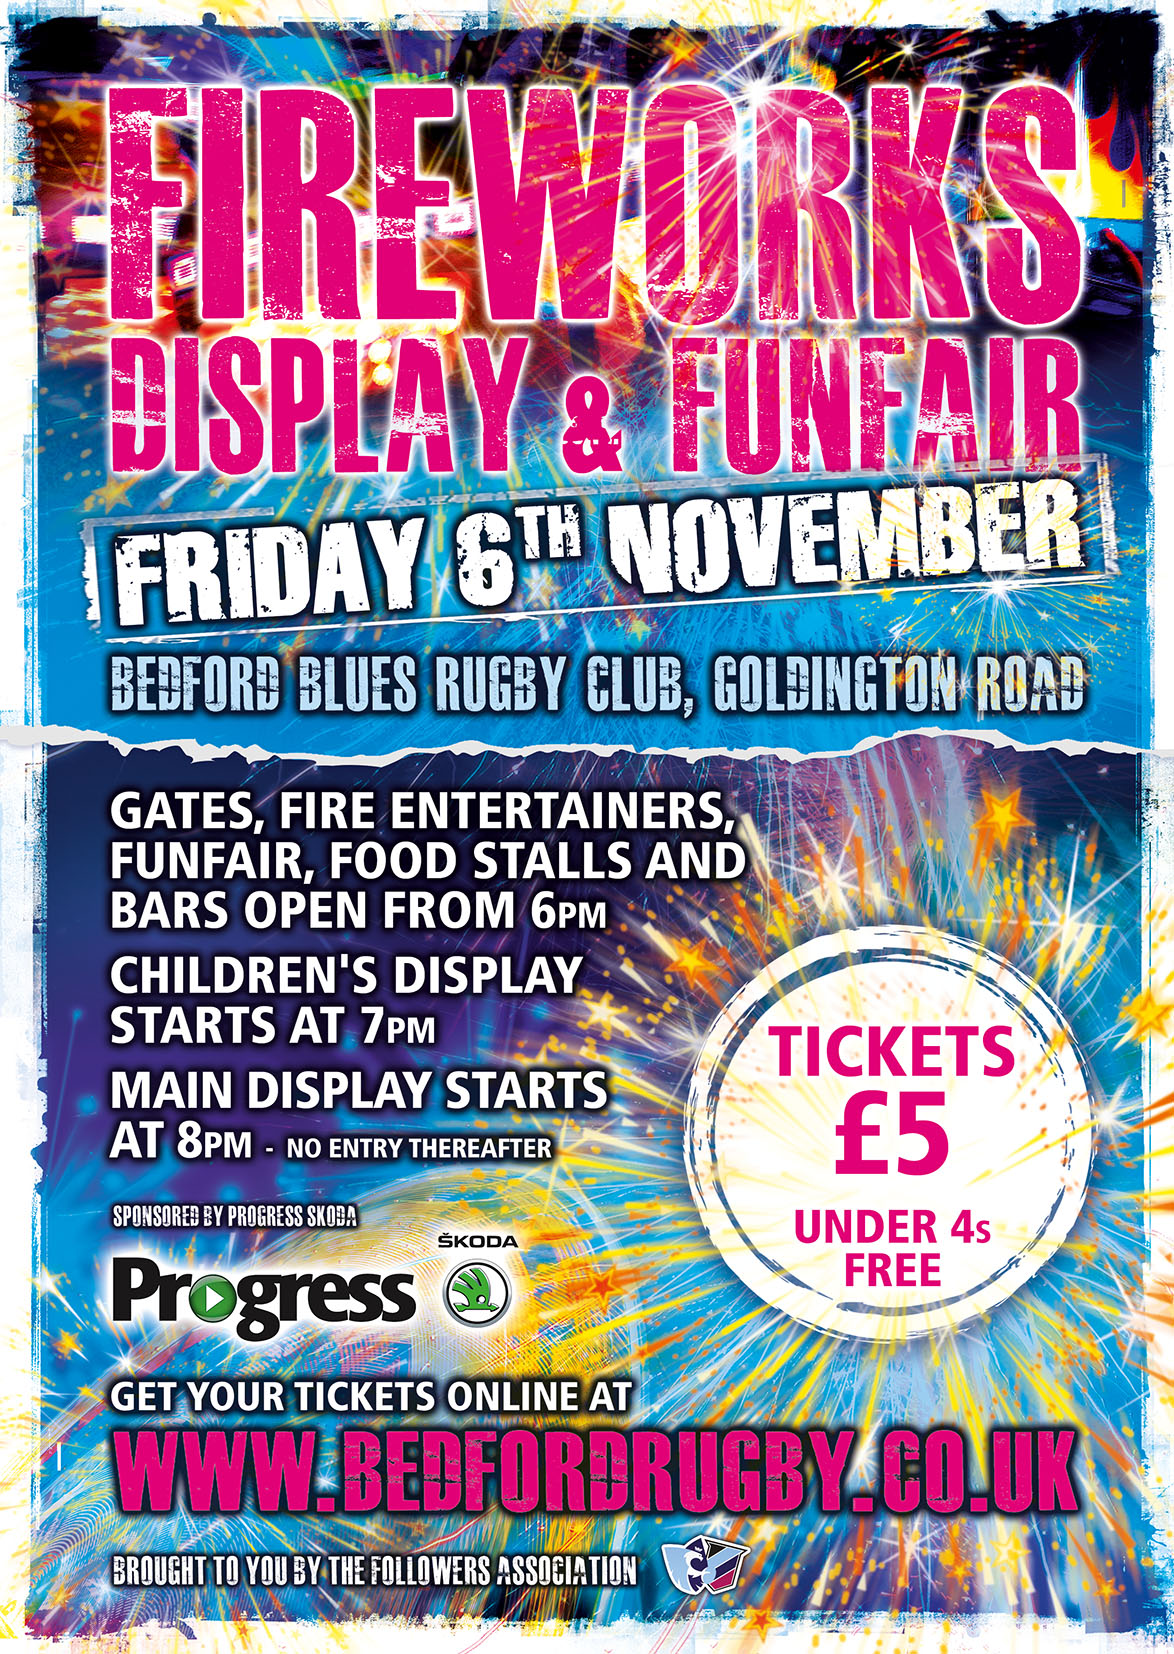 Bedford Blues Rugby Club Fireworks 2015